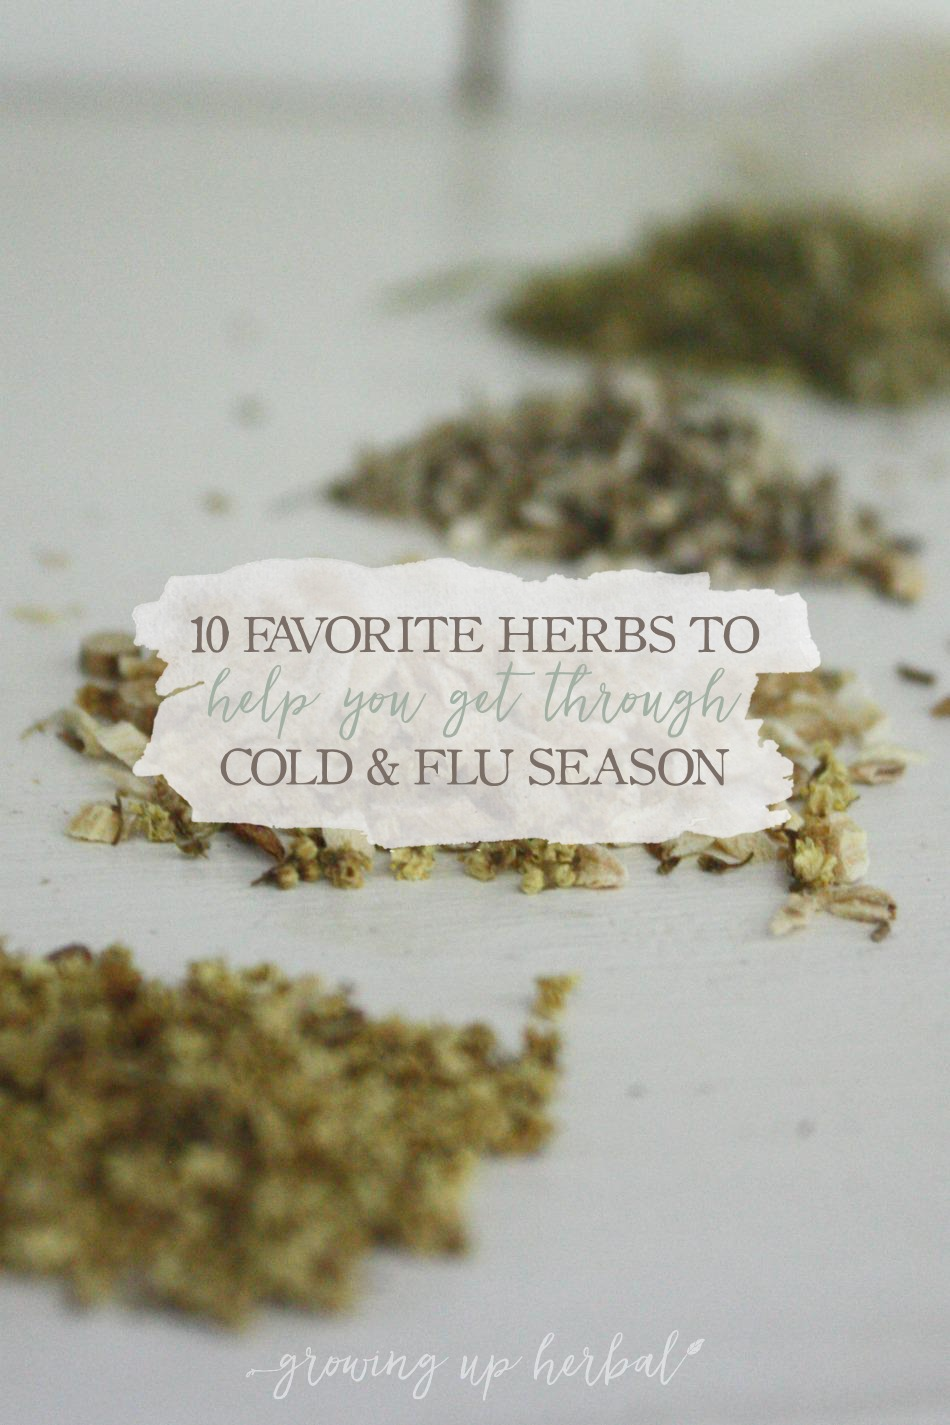 10 Favorite Herbs To Help You Get Through Cold & Flu Season | Growing Up Herbal | Learn which herbs to have on hand during cold and flu season and how to use them.